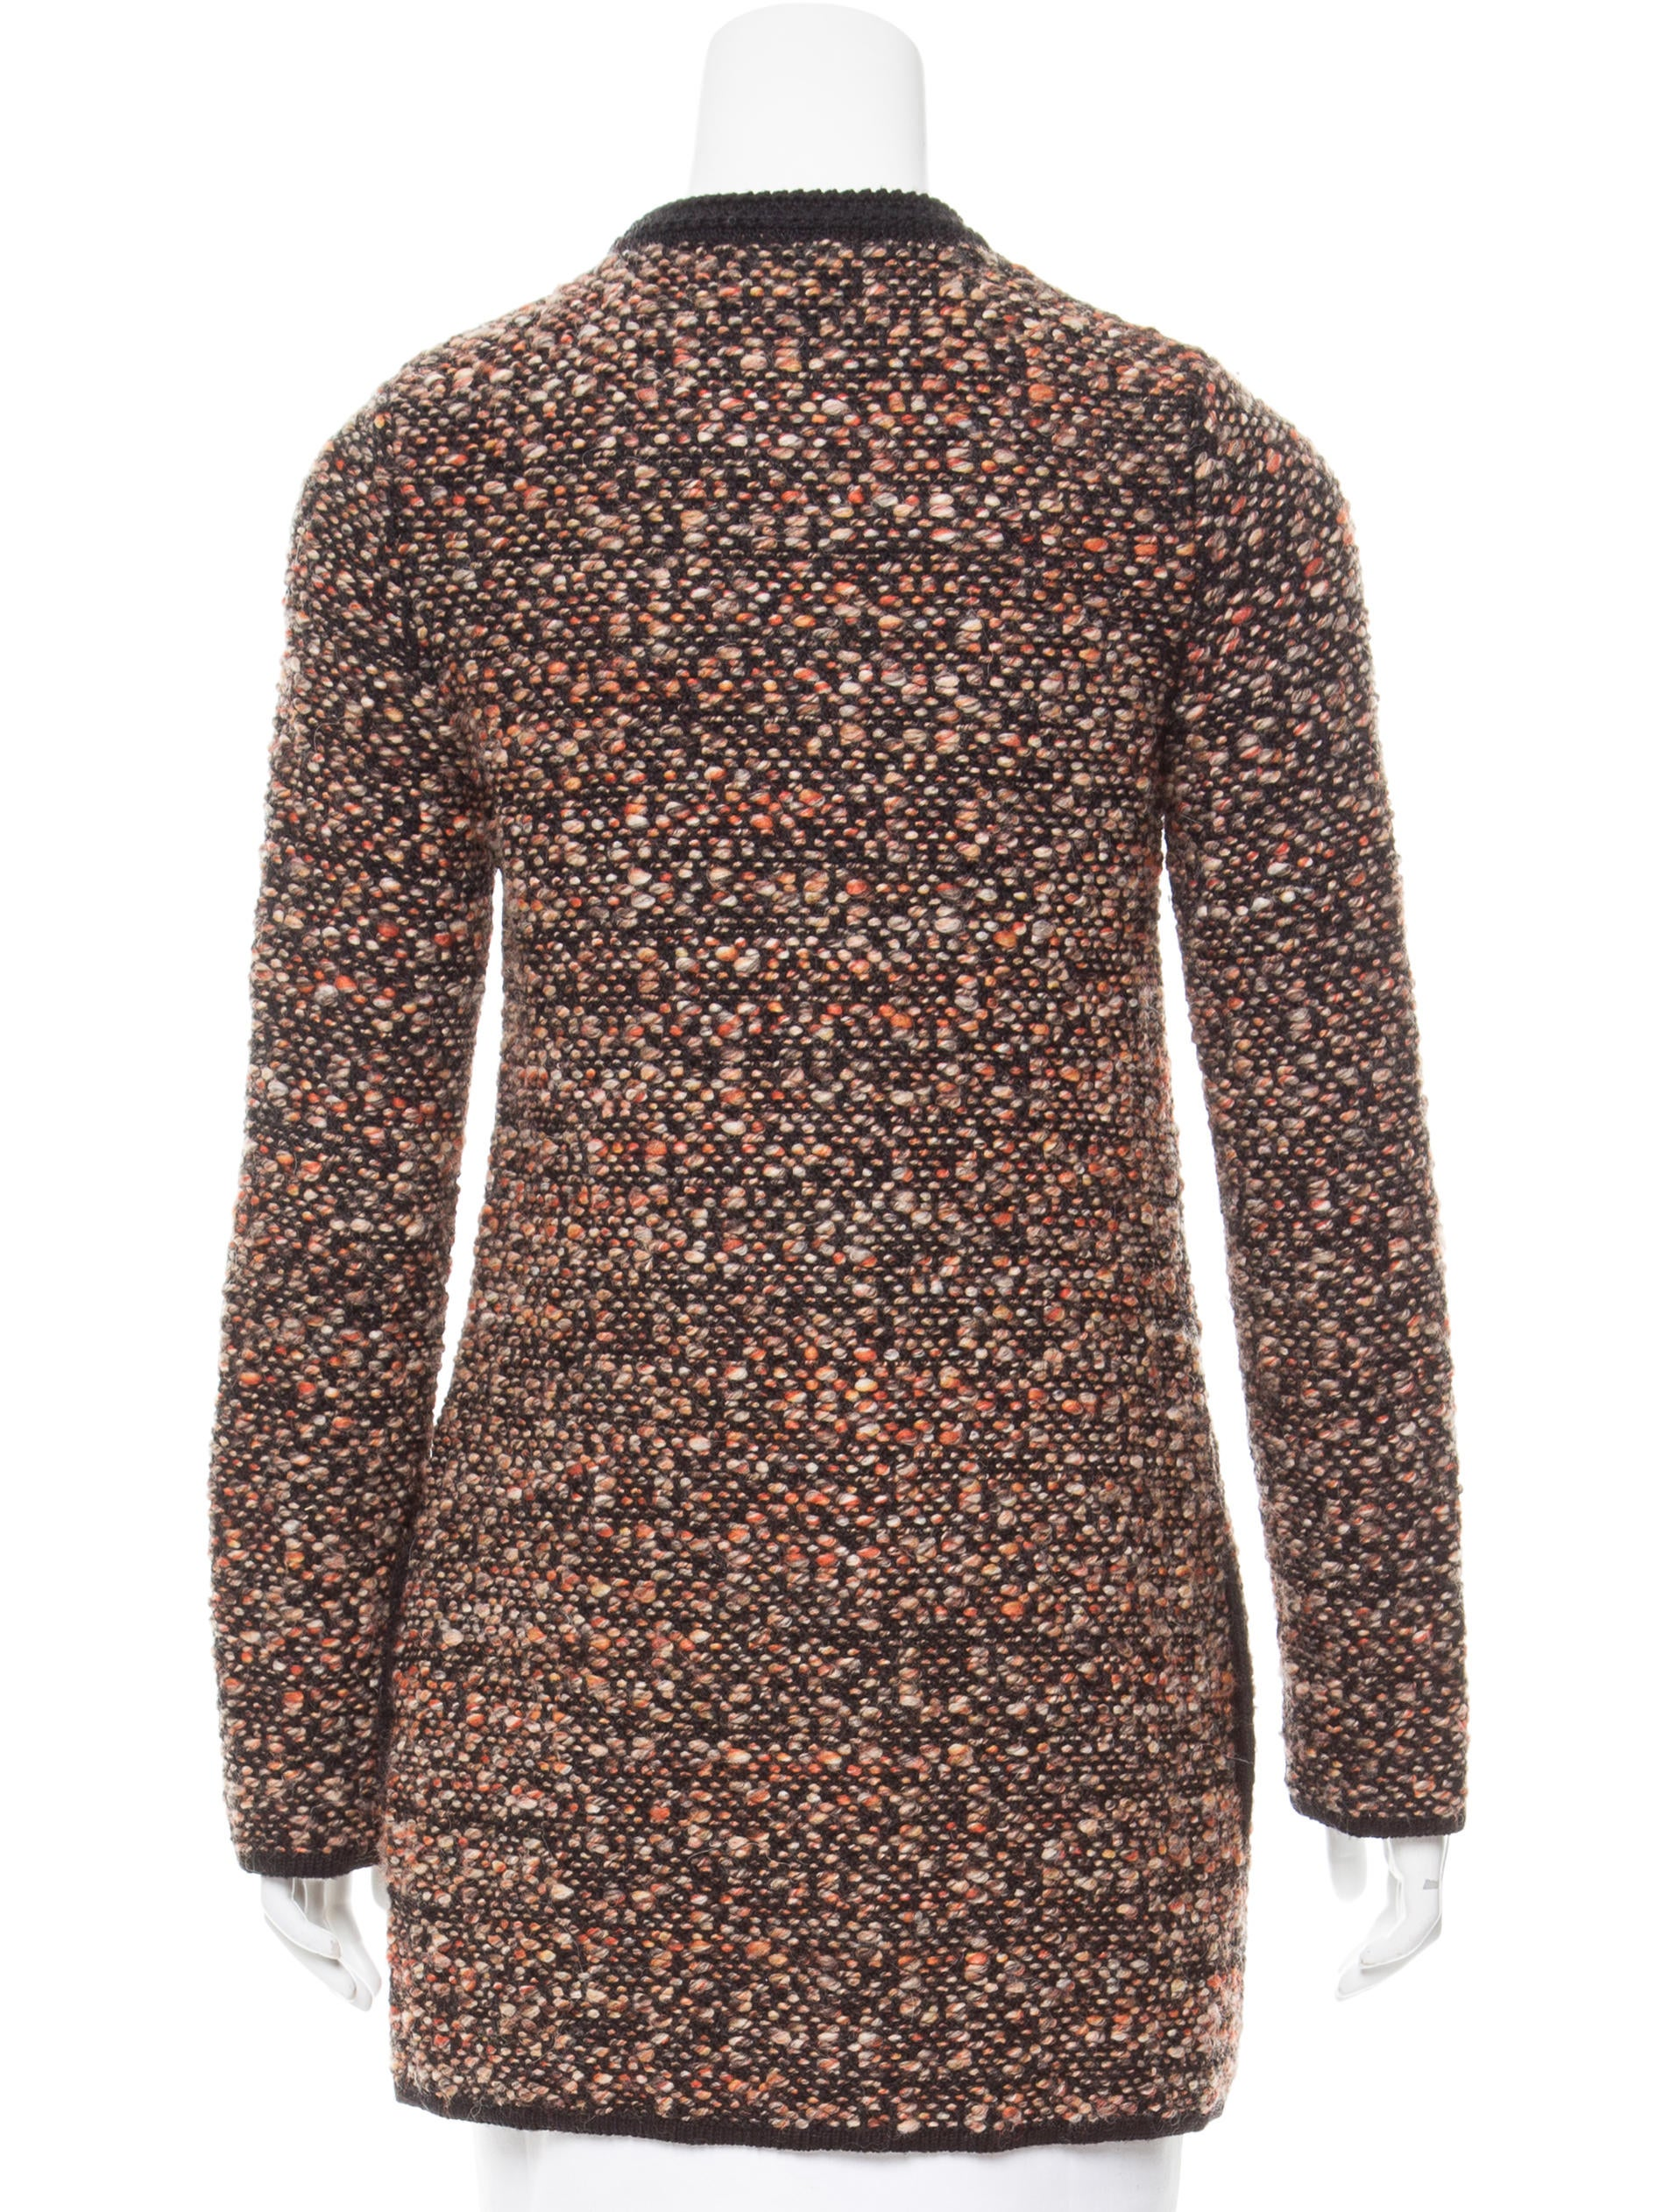 Missoni merino wool m lange cardigan clothing mis42916 for Merino wool shirt womens